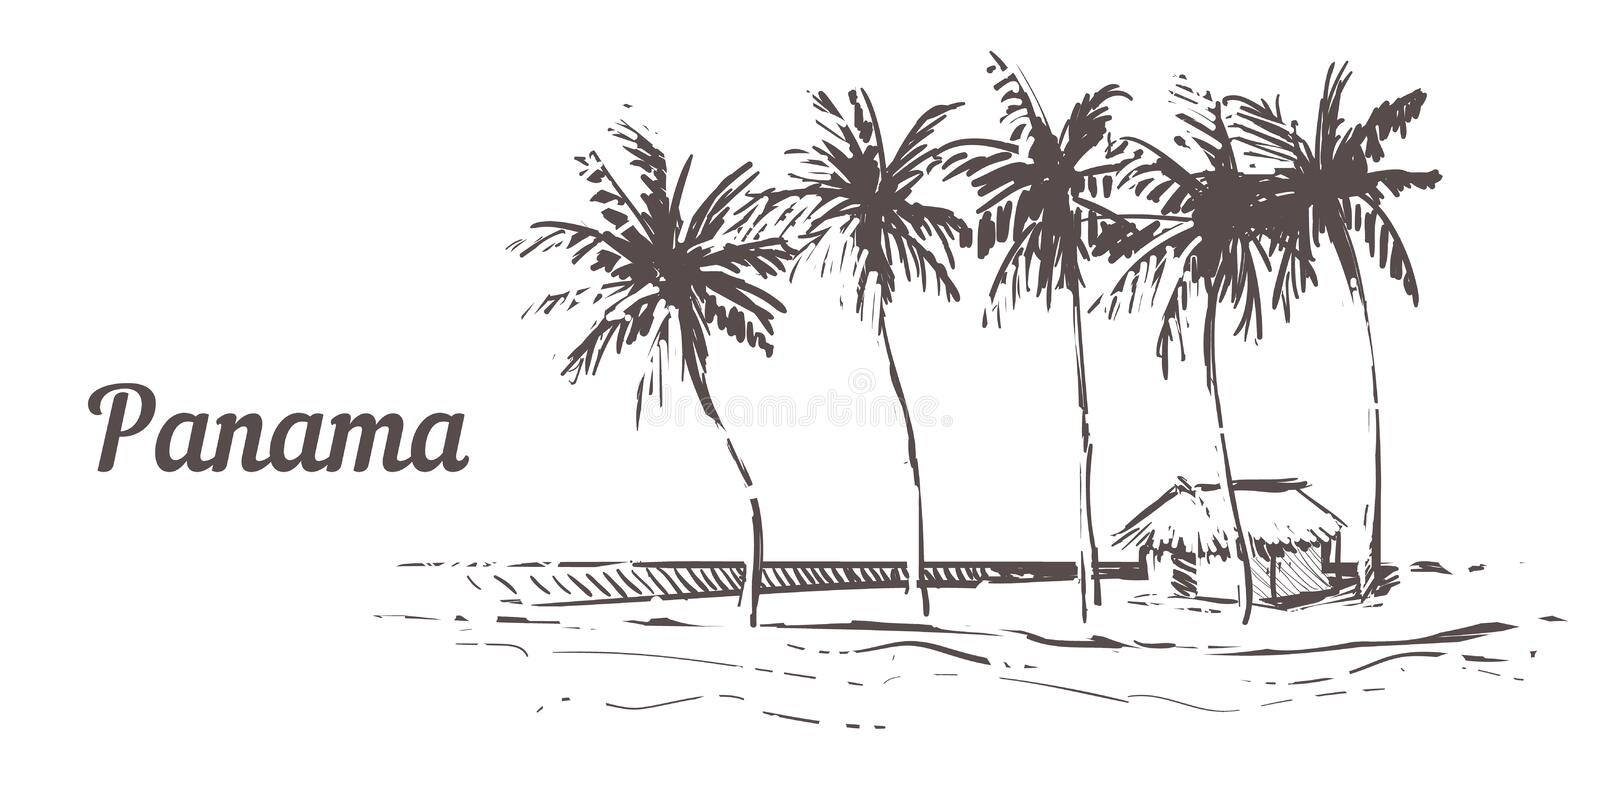 Hand drawn palm beach.Panama island with beach house,sketch vector illustration royalty free illustration